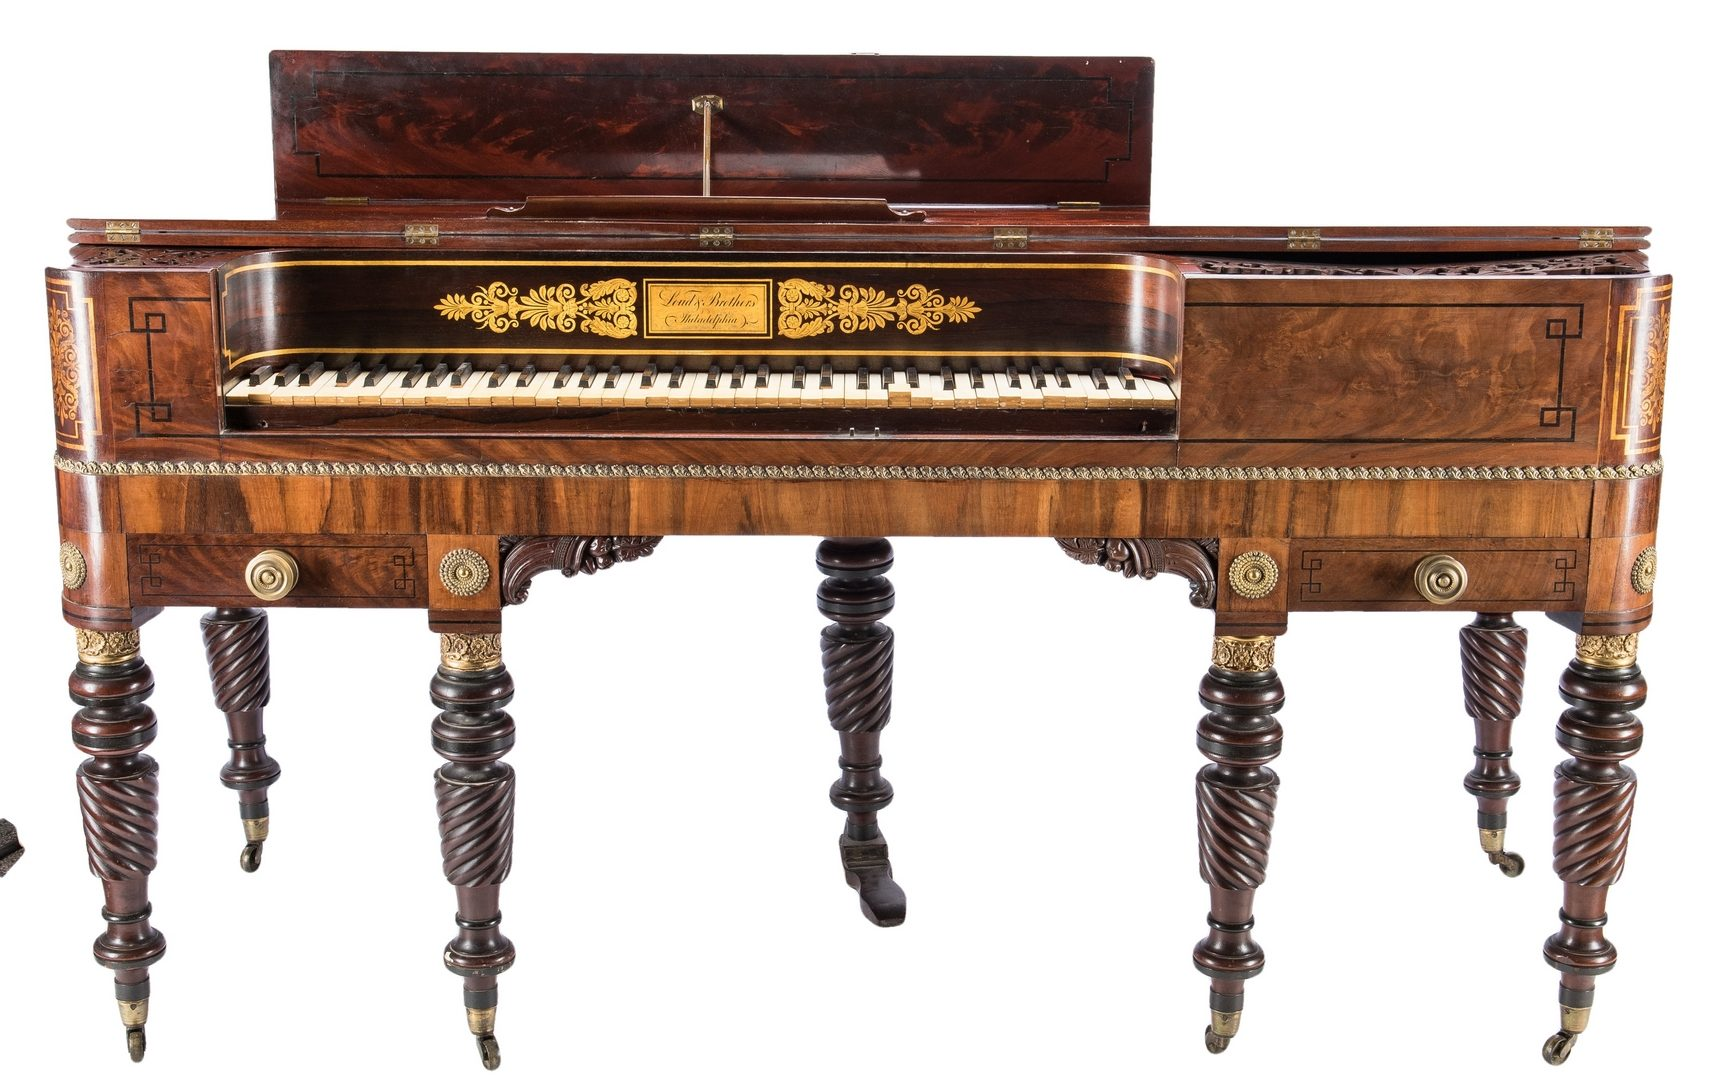 Lot 403: American Federal Piano Forte, Loud Brothers